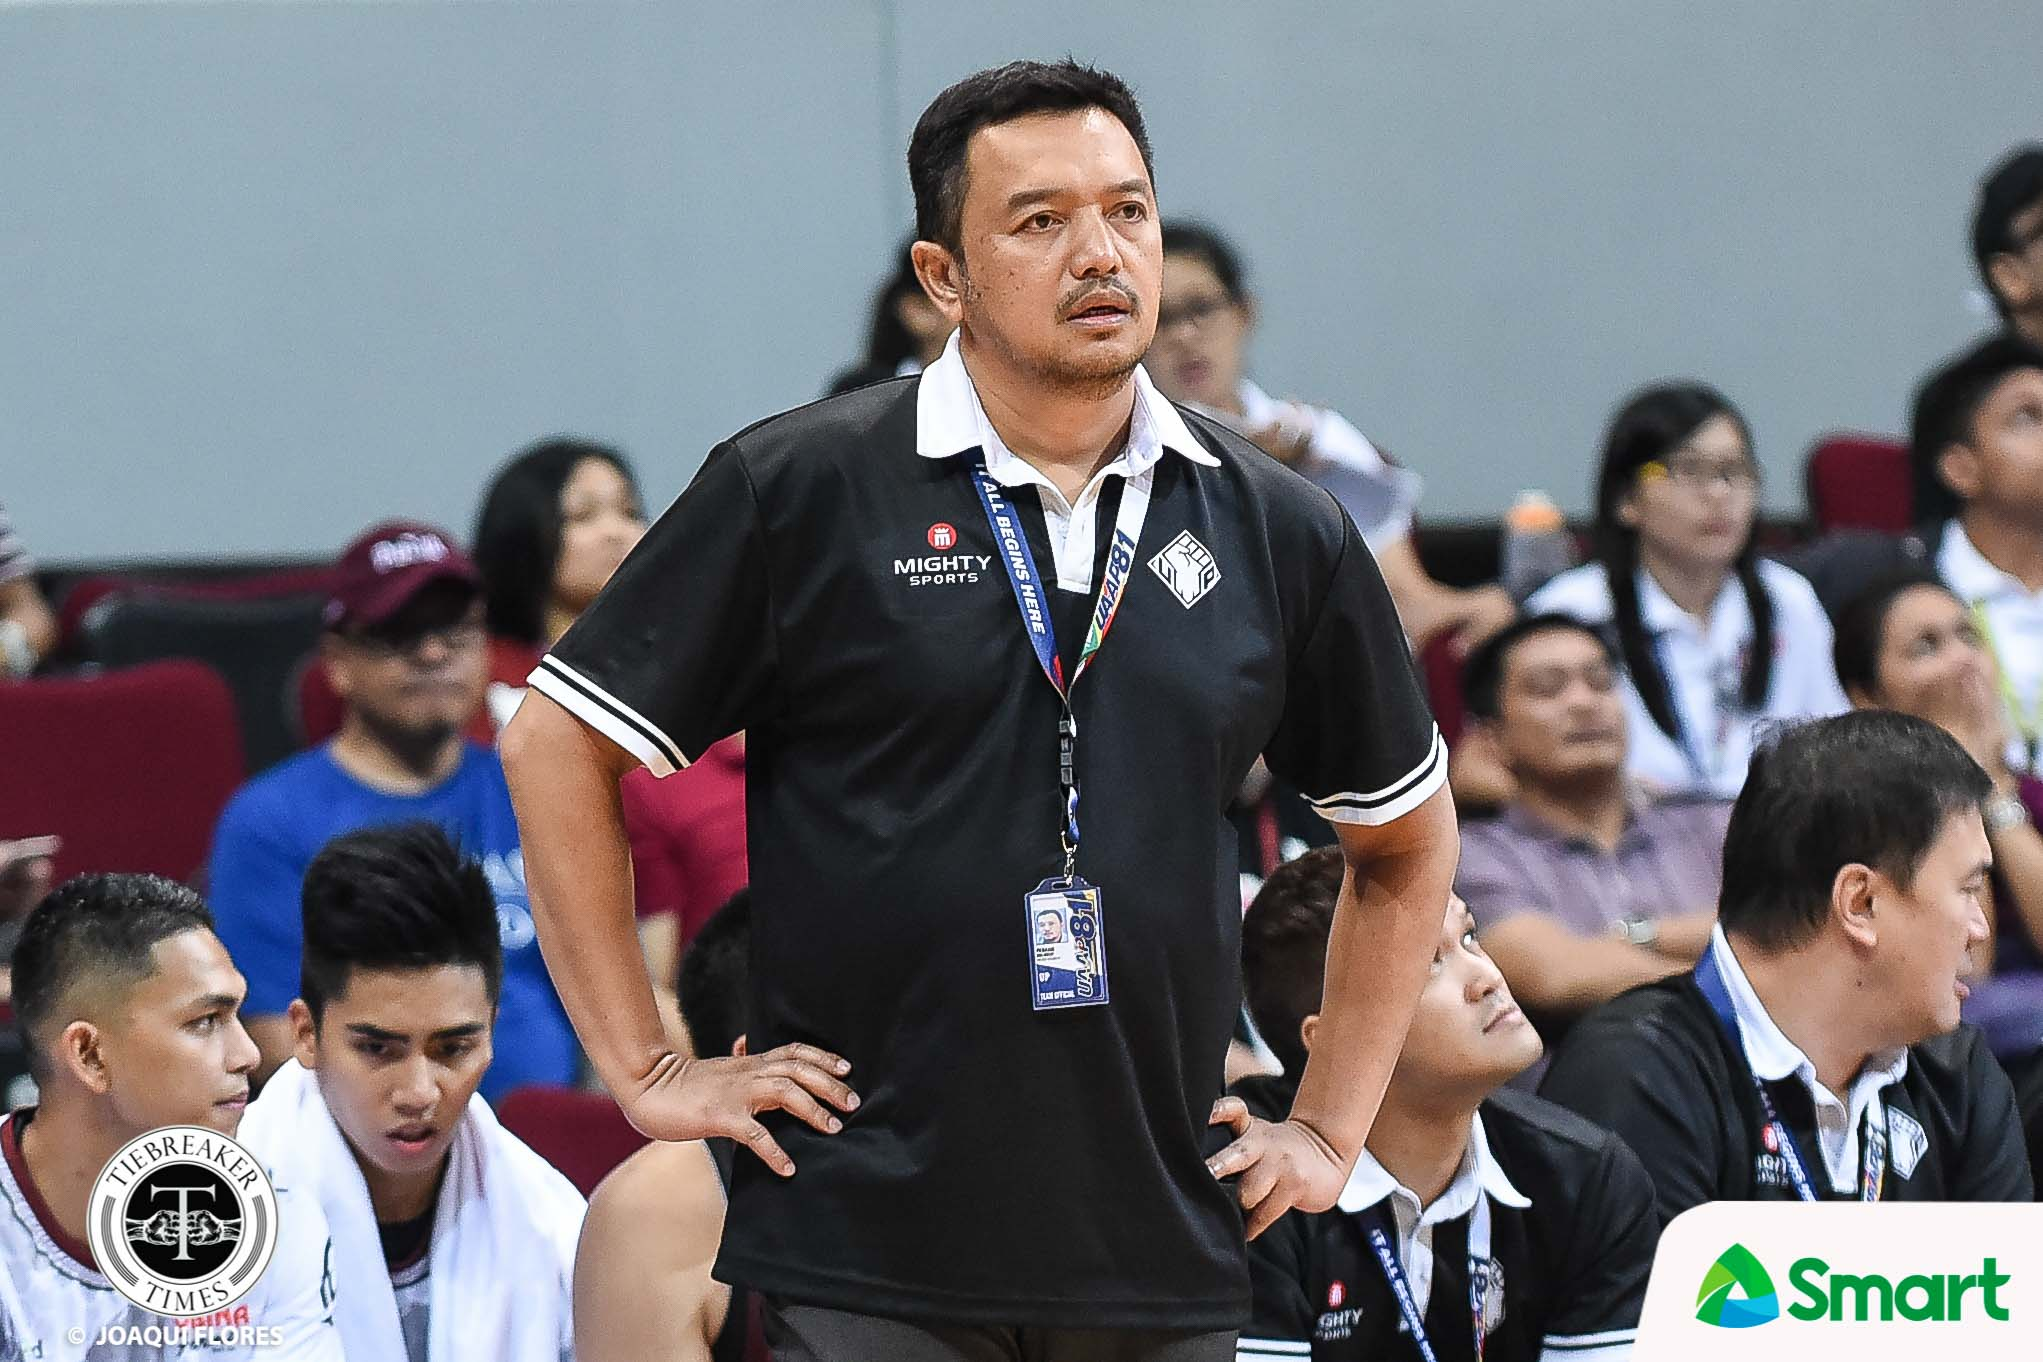 Tiebreaker Times The change that led to the UP Fighting Maroons' magical UAAP 81 run Basketball News UAAP UP  UP Men's Basketball UAAP Season 81 Men's Basketball UAAP Season 81 Paul Desiderio Jarell Lim Gelo Vito Diego Dario Bo Perasol